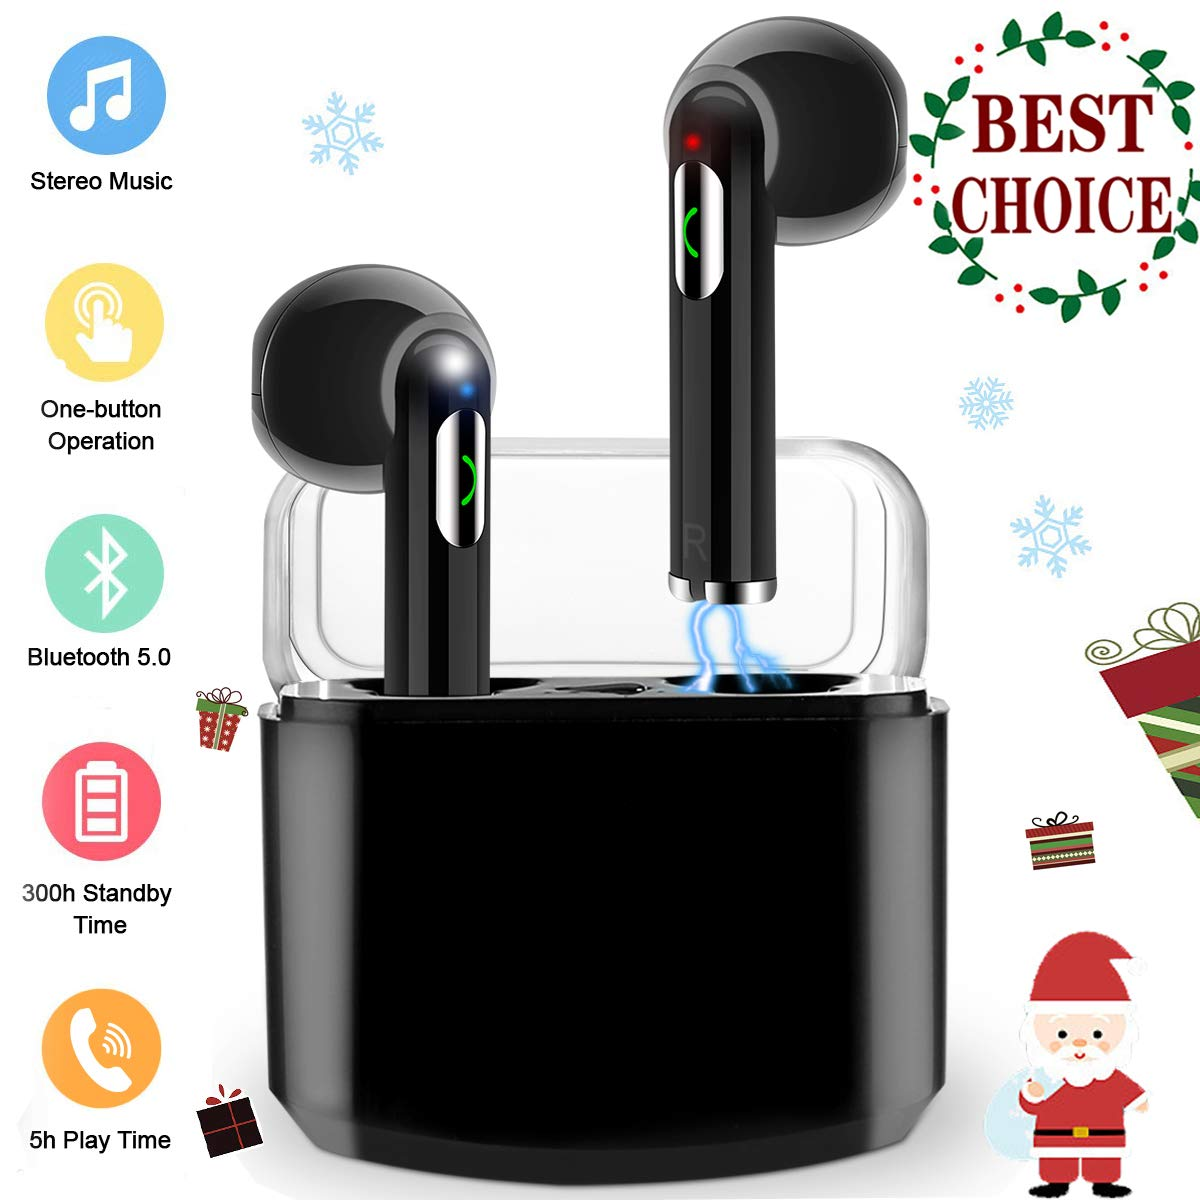 Wireless Earbuds,Bluetooth Headphones TWS Stereo Wireless Earbuds with Charging Case Mini Bluetooth Earbuds with Microphone Sports in Ear Wireless Earphones Bluetooth Headset for Work Running Travel